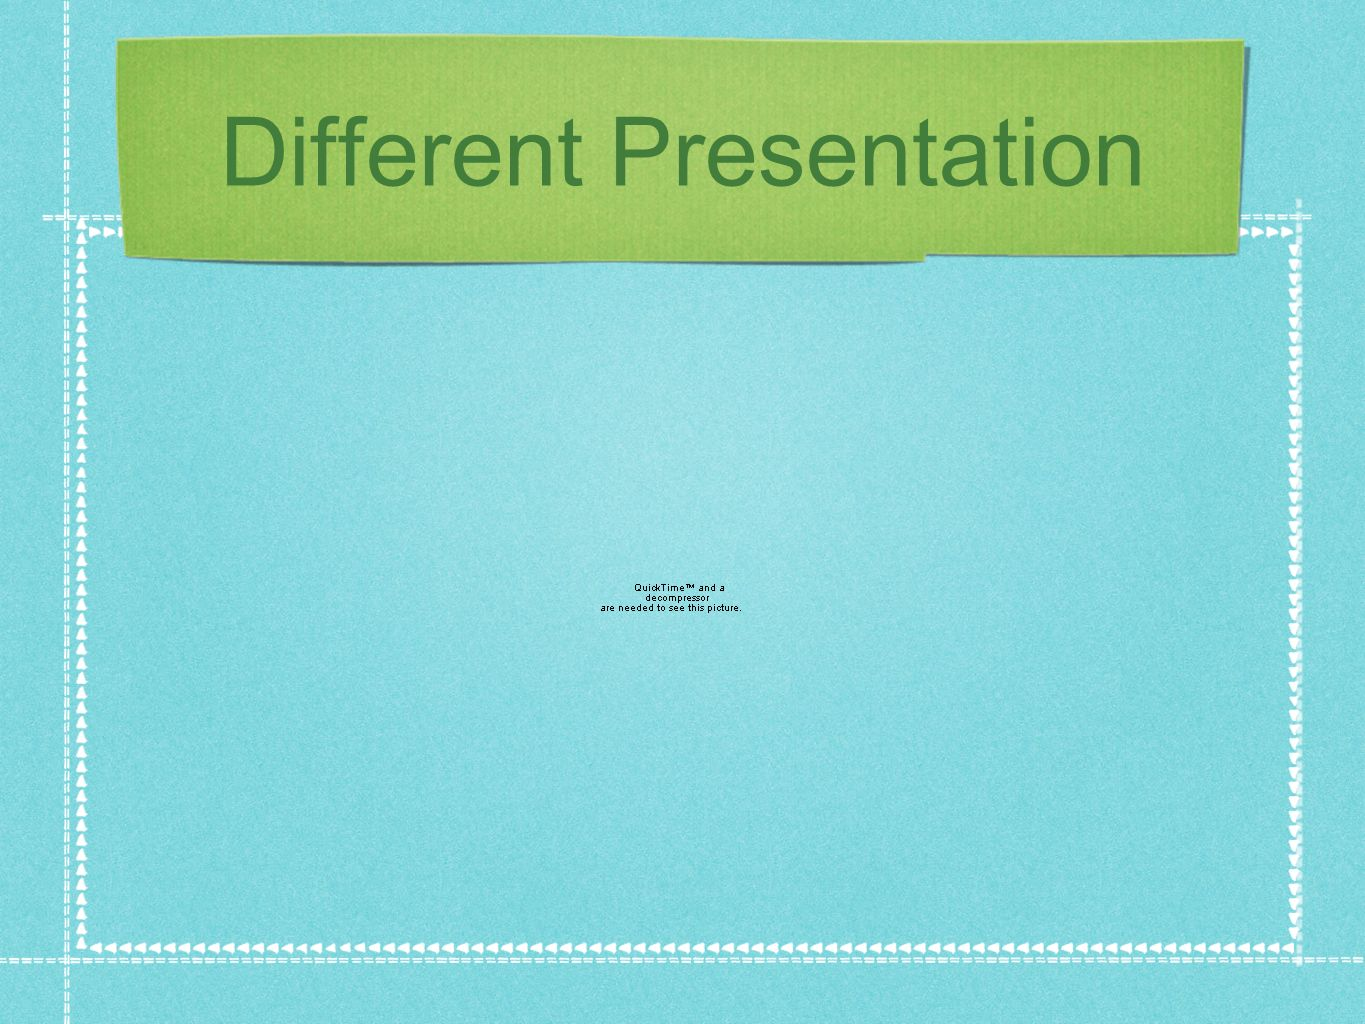 Different Presentation